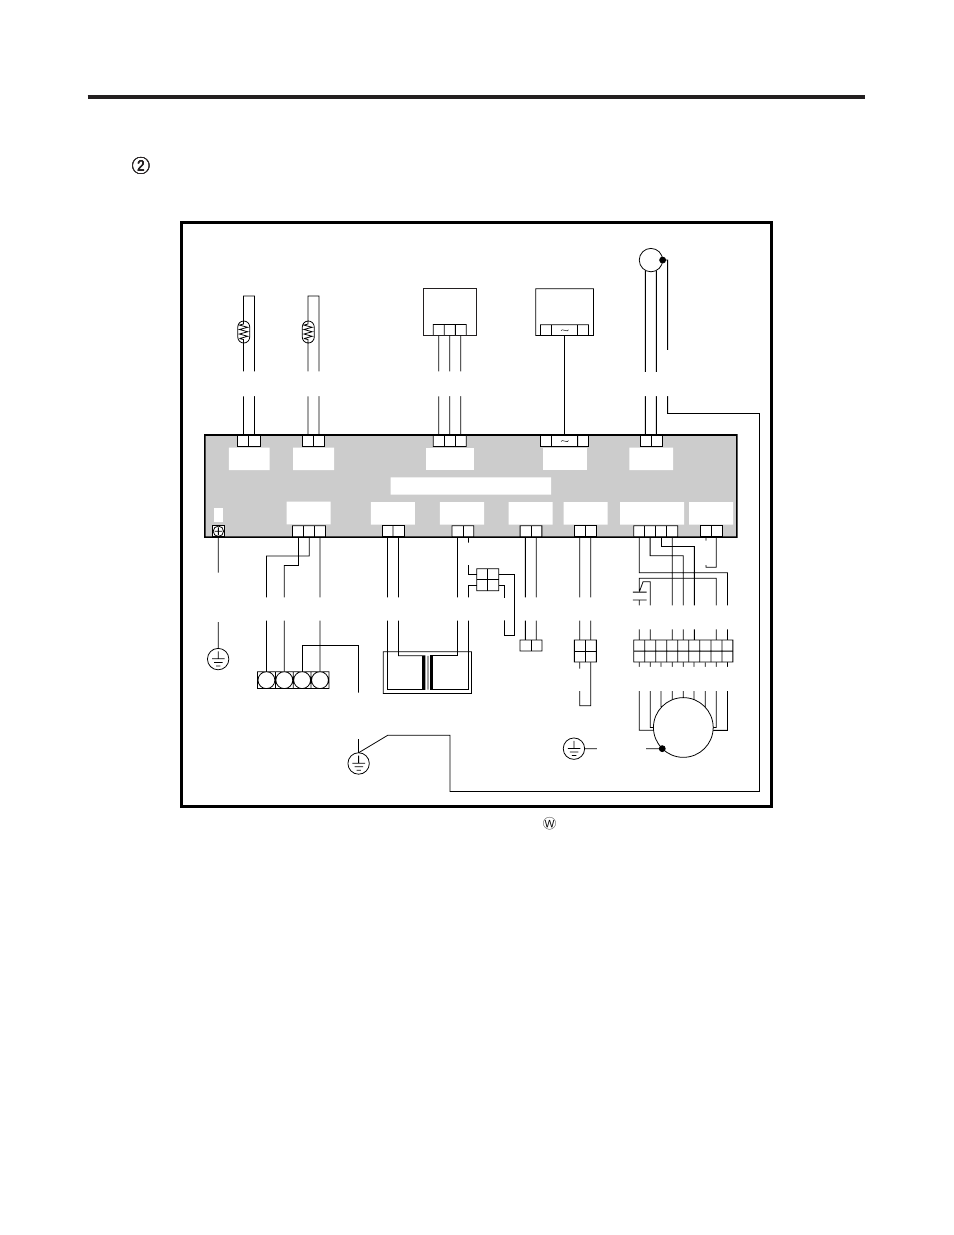 2003 Mazda Protege Radio Wiring Data Diagrams Diagram Protege5 Fuse Box Auto